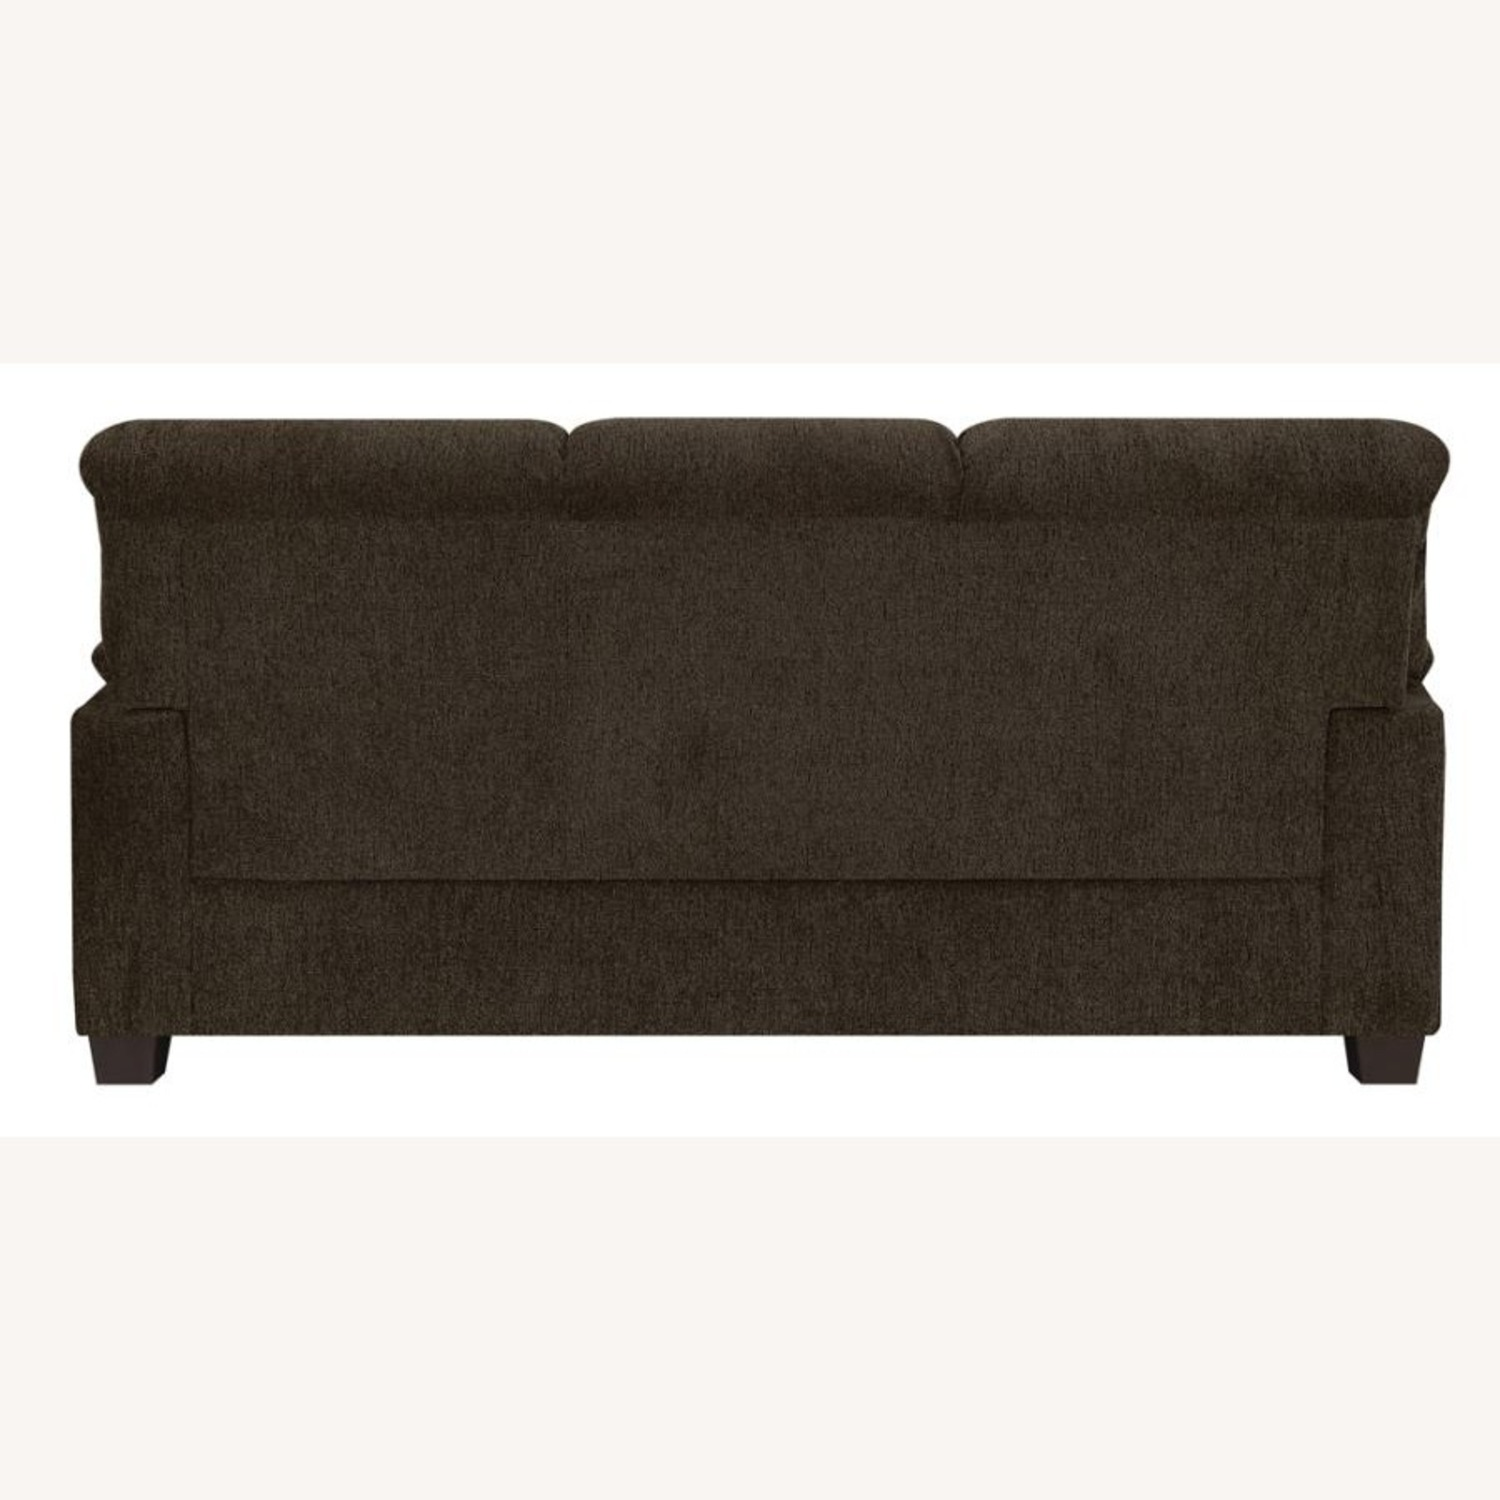 Sofa In Brown Chenille Upholstery Finish - image-3